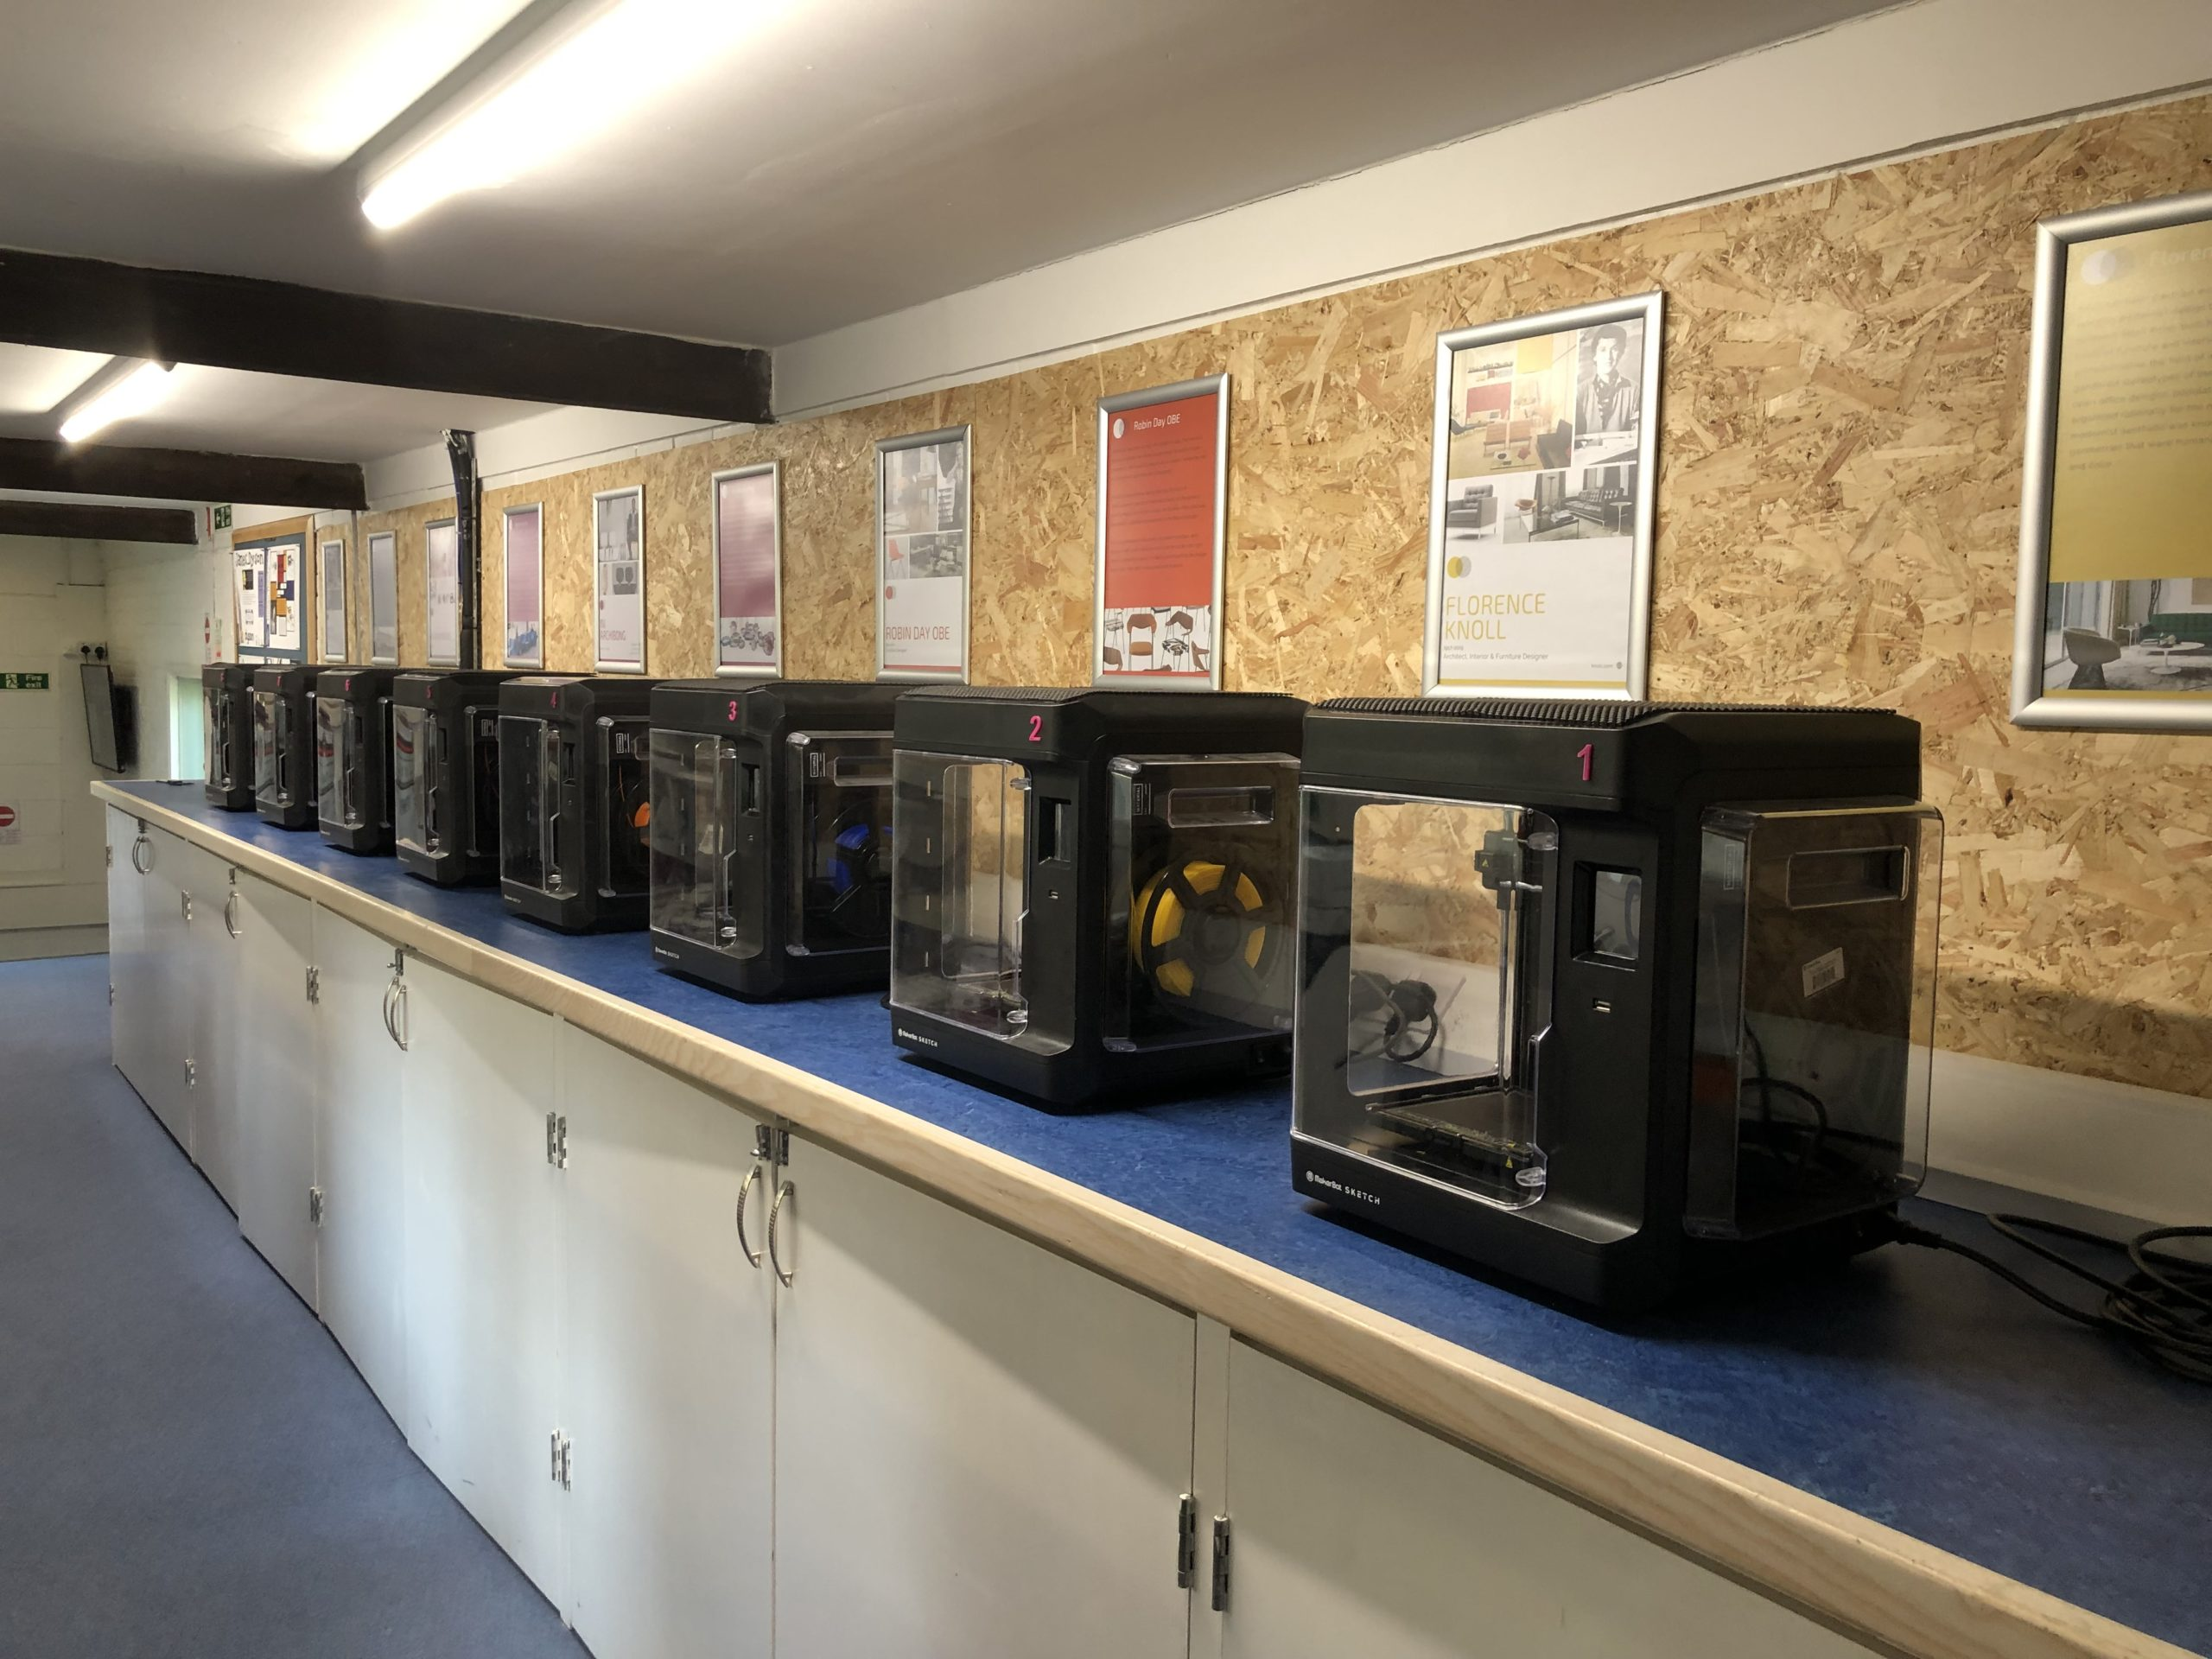 With additional SKETCH 3D printers at their disposal, student workflow and productivity have drastically improved